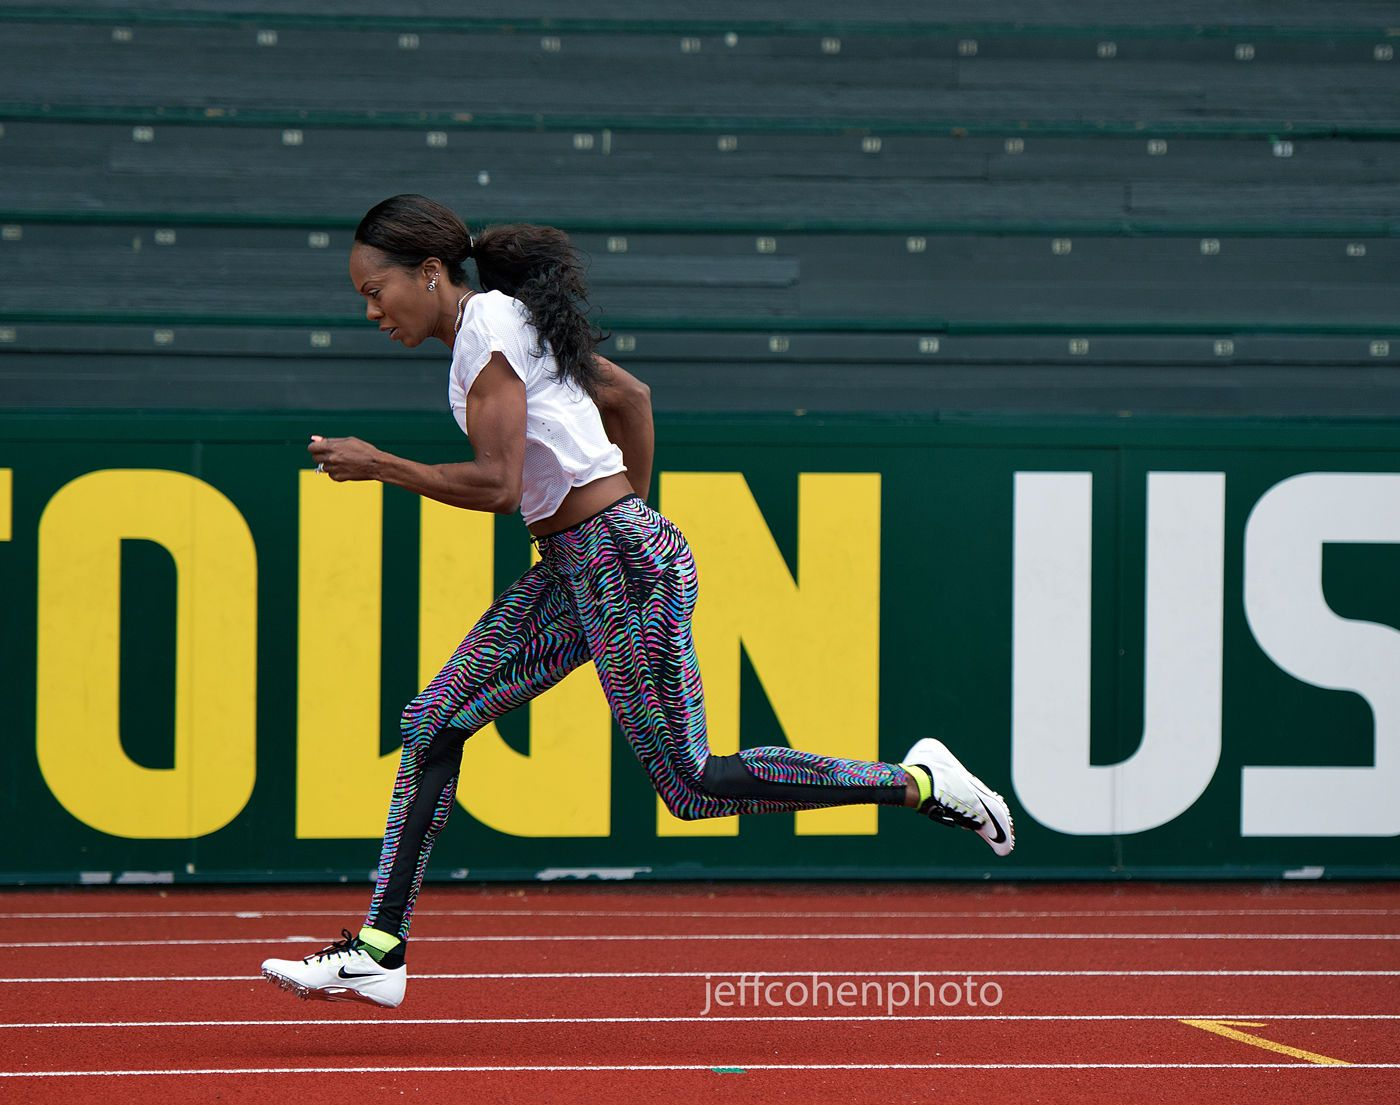 1pre_pre_2016_ssr_tracktown_jeff_cohen_photo_235_web.jpg